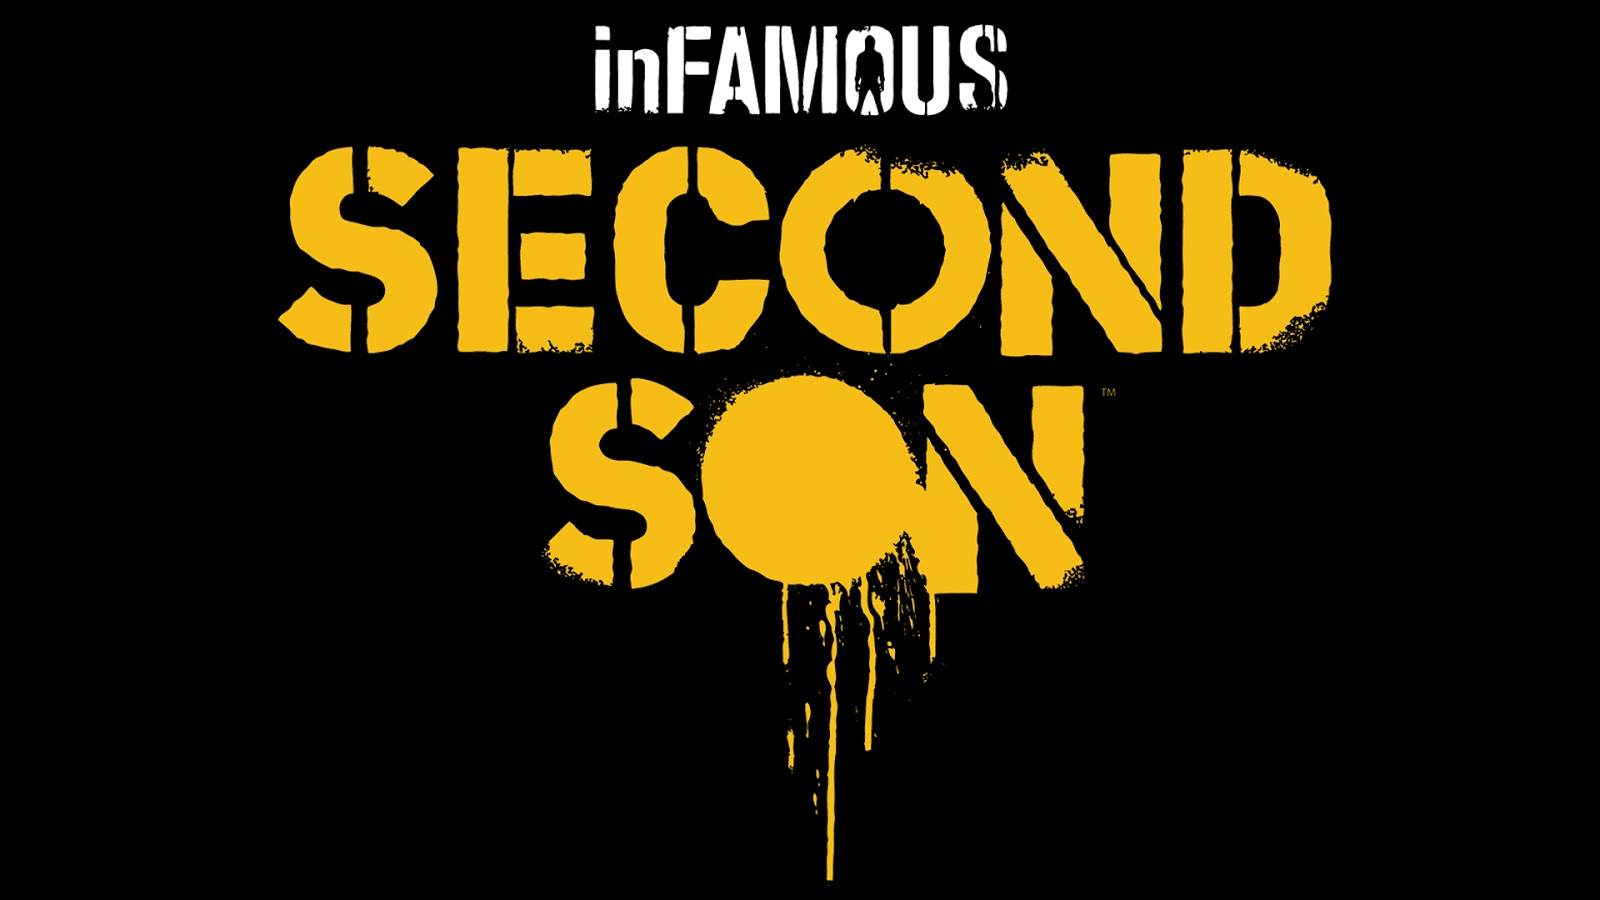 Preview: Infamous: Second Son Hands On - weknowgamers